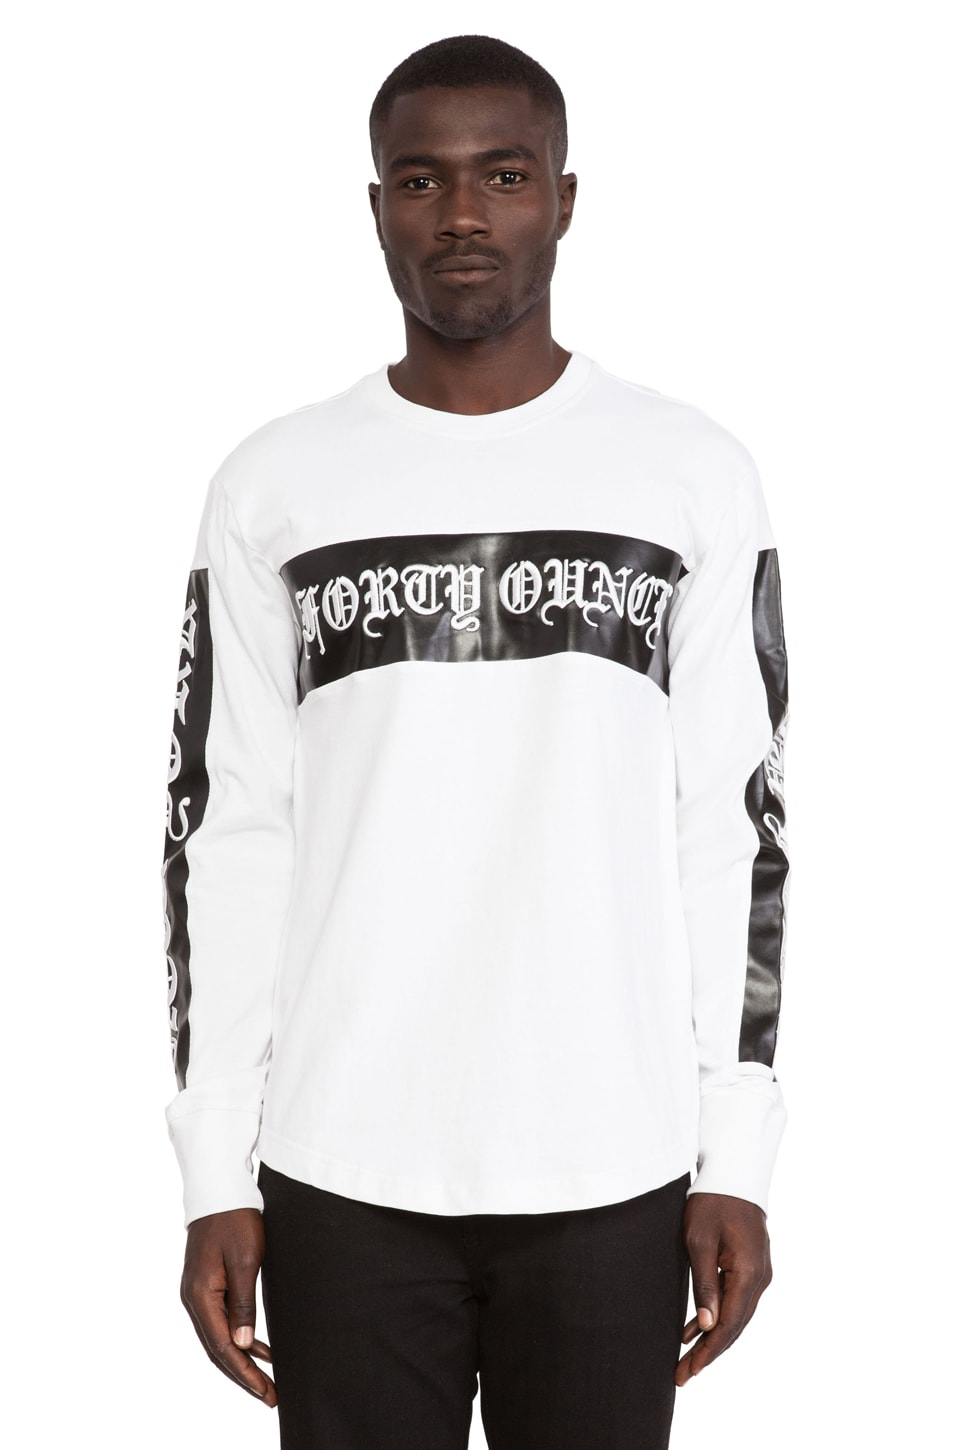 40 OZ NY L/S Tee in White